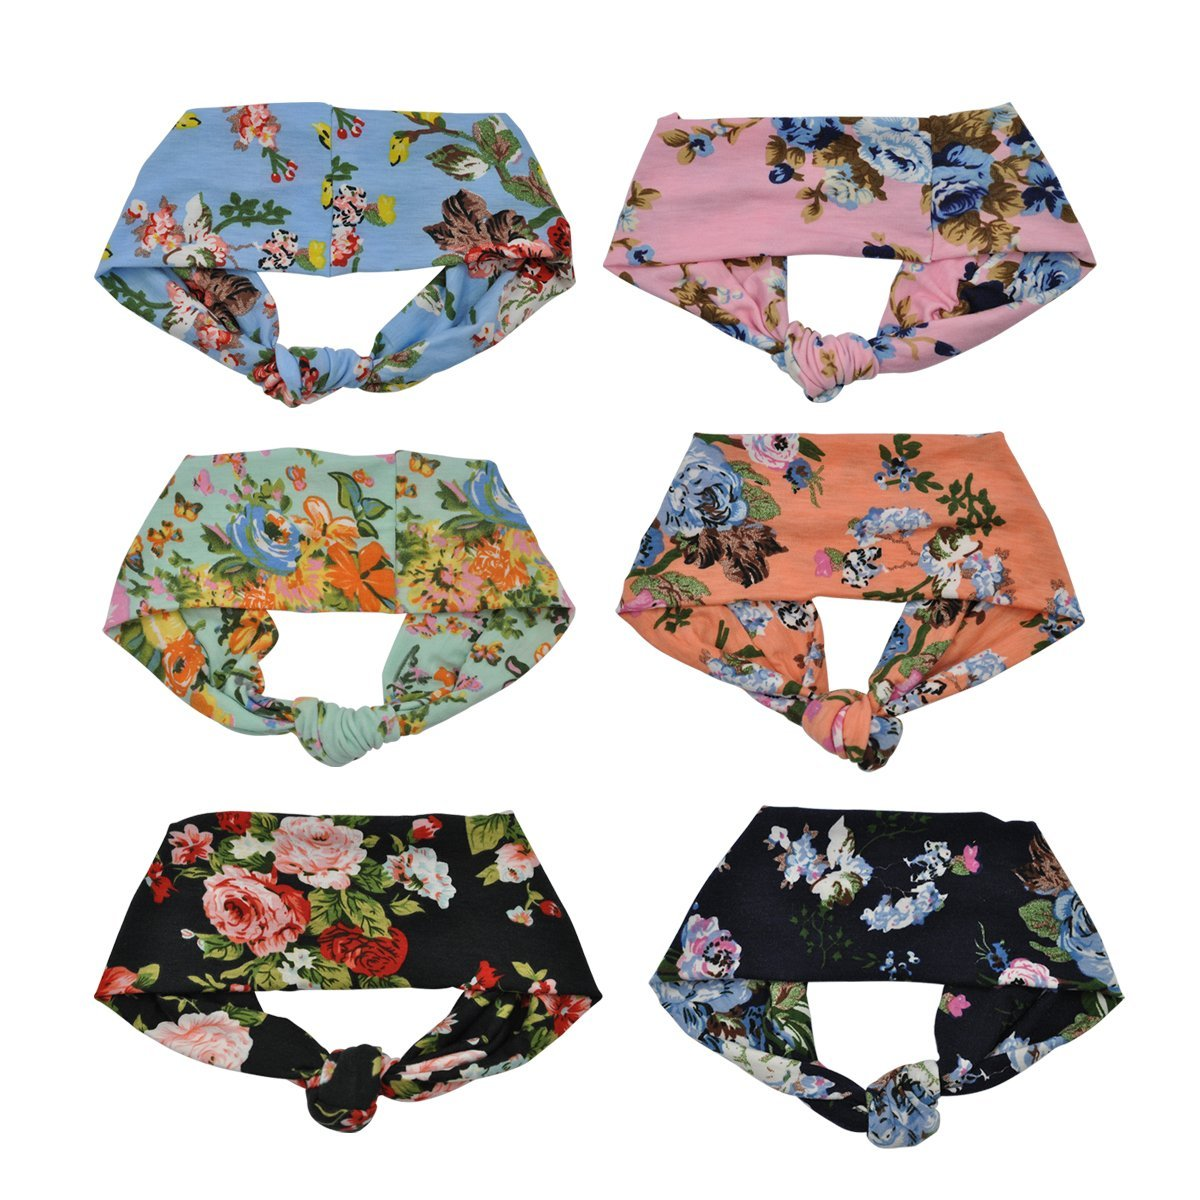 Lady Up Vintage Flower Headwraps Hairbands Bows Women Headbands for Fashion or Sport,6-Pack